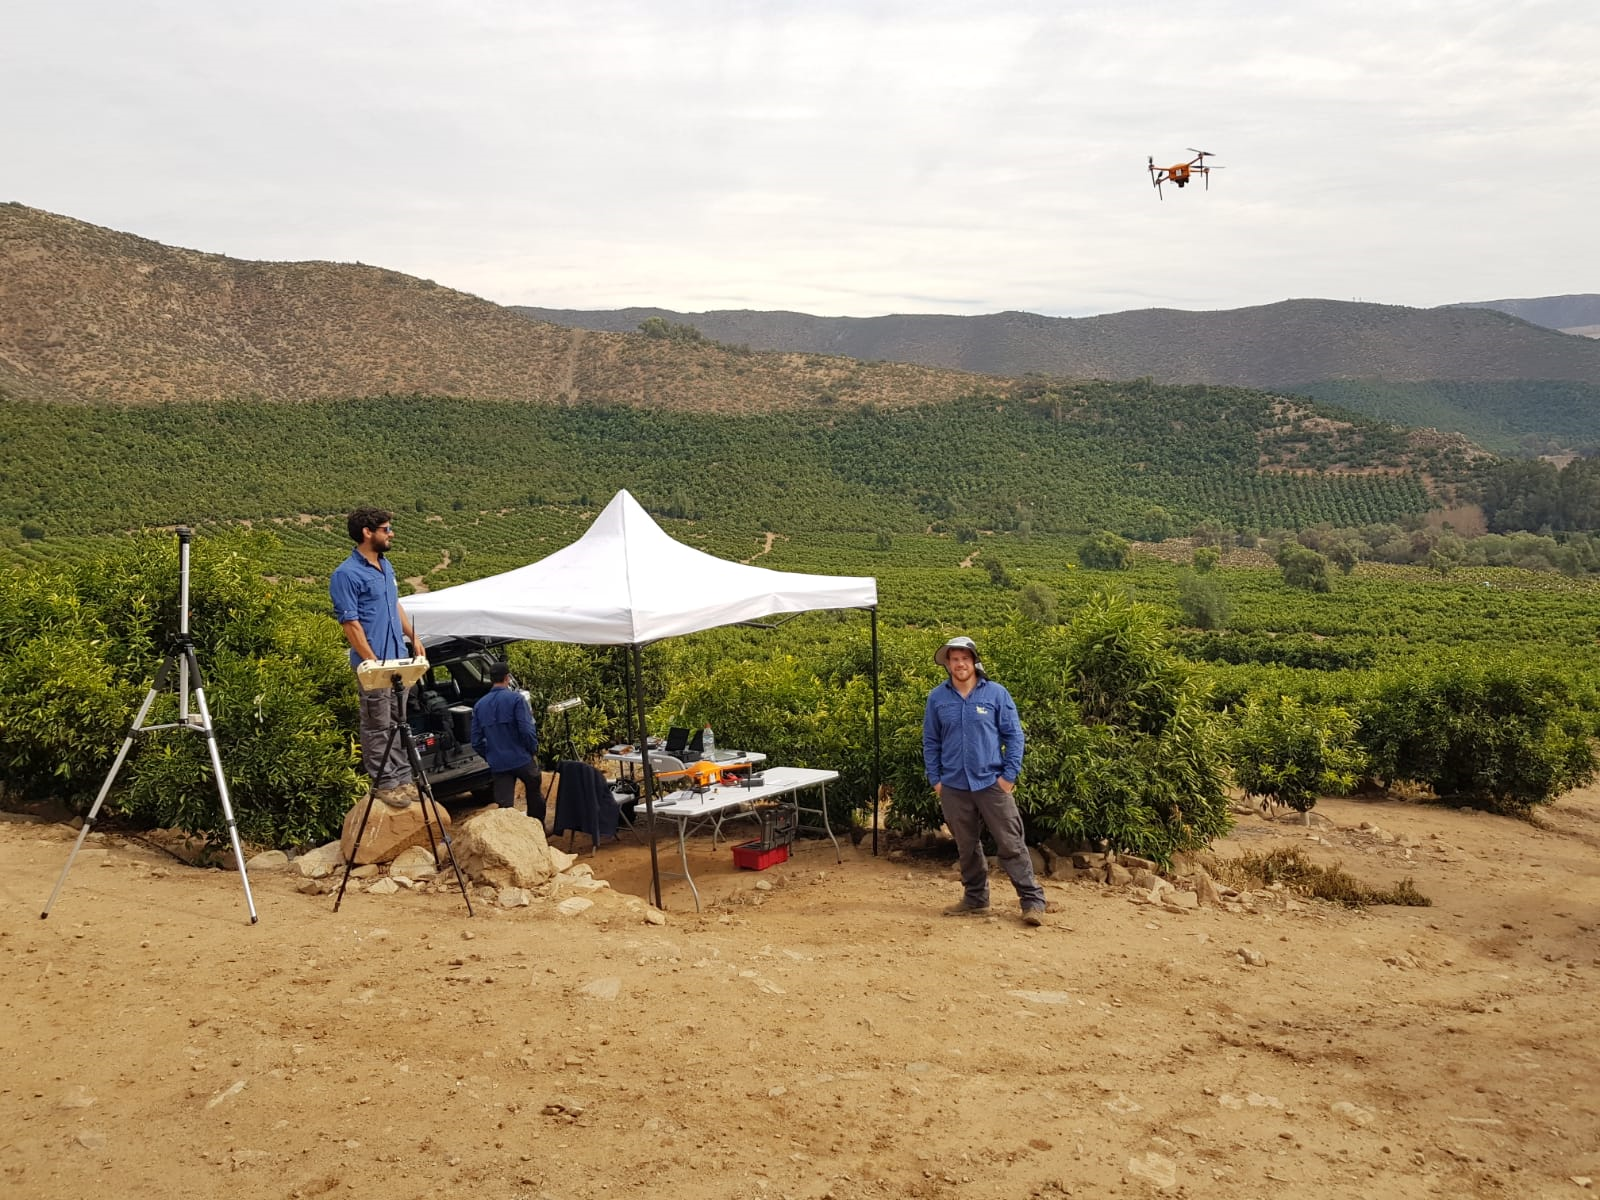 In a nutshell: AI-powered tree doctors mounted on drones